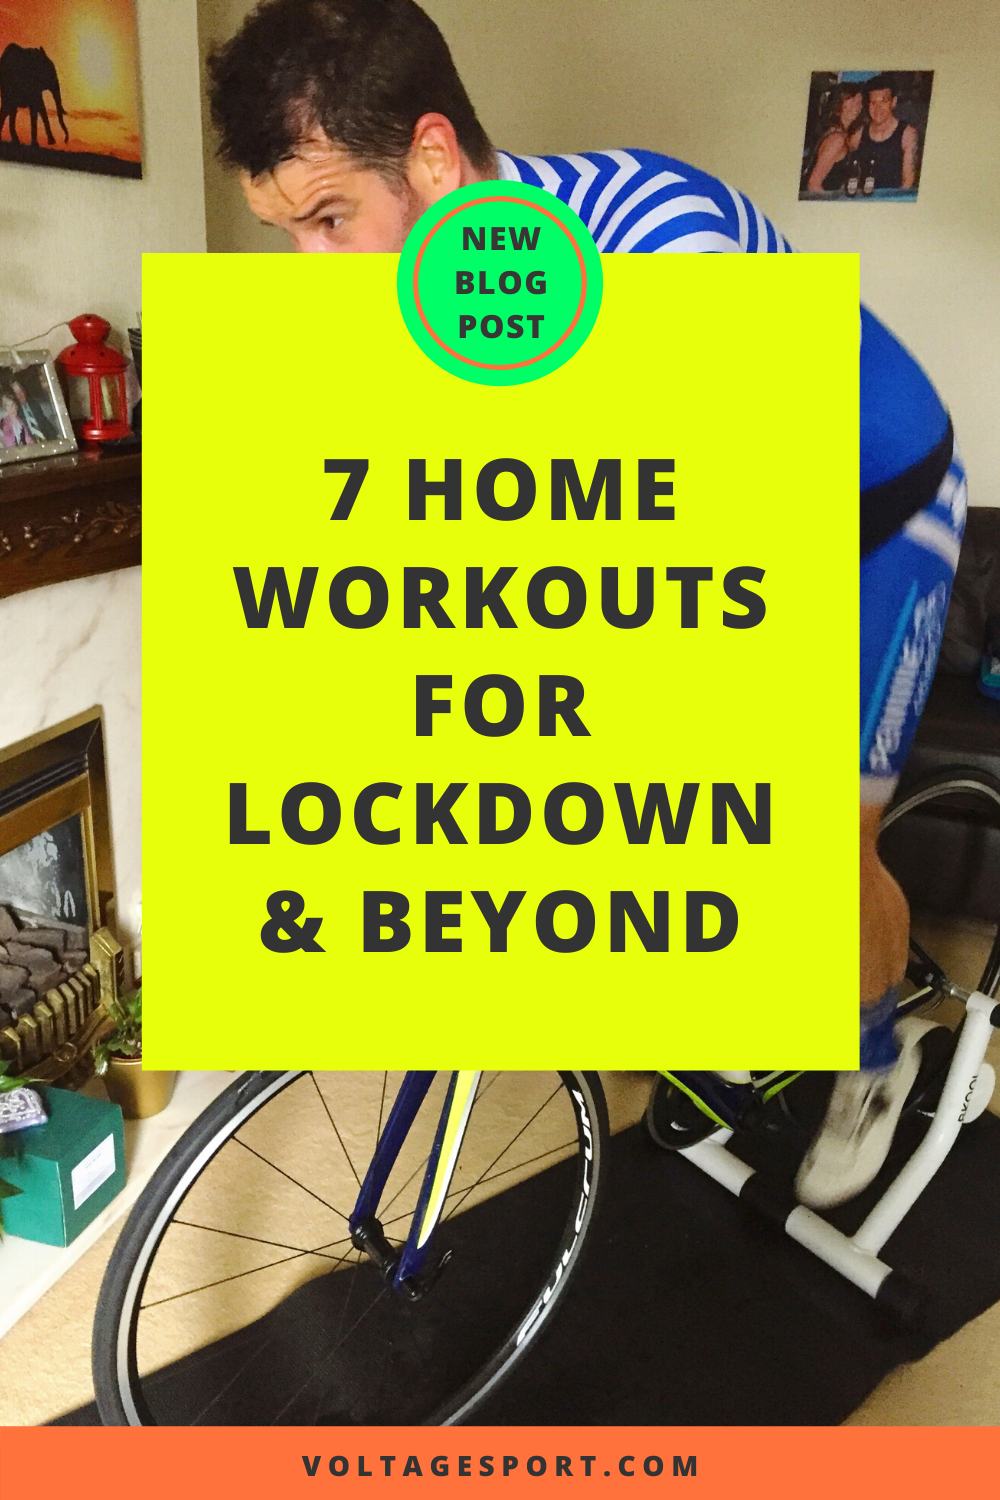 Home workouts for lockdown and beyond